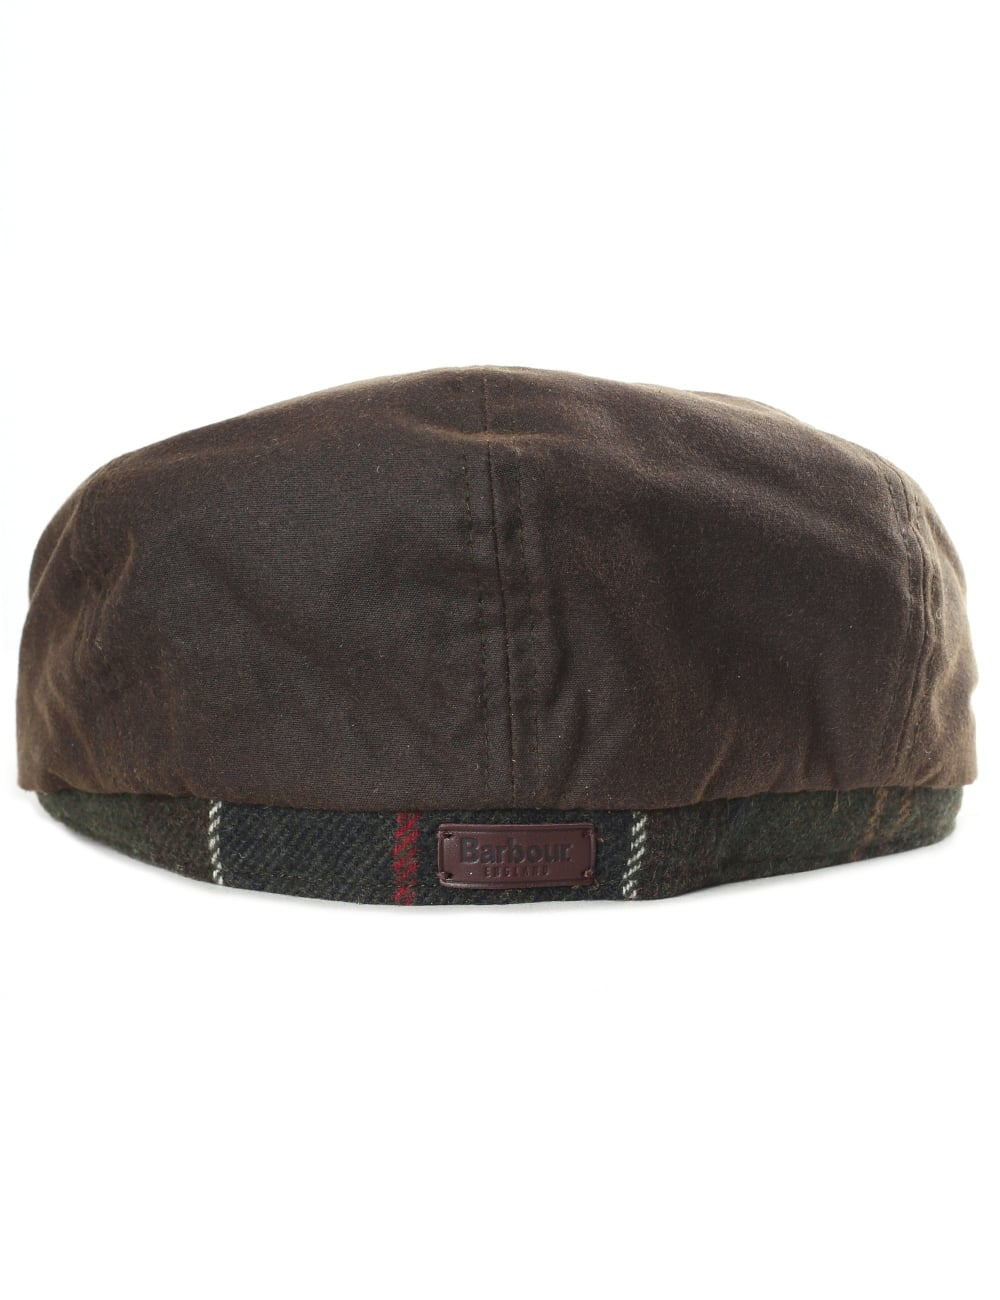 Barbour Gullemot Men s Baker Boy Flat Cap b63b7210555